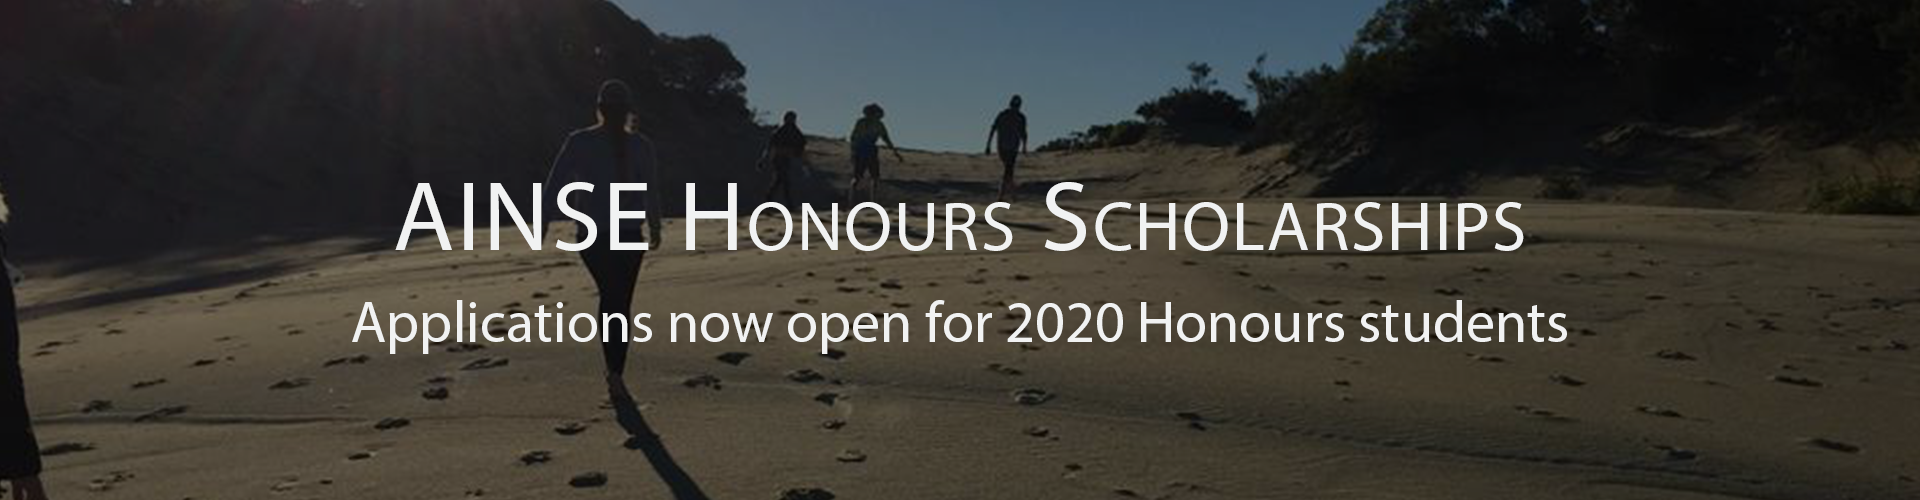 AINSE Honours Scholarships